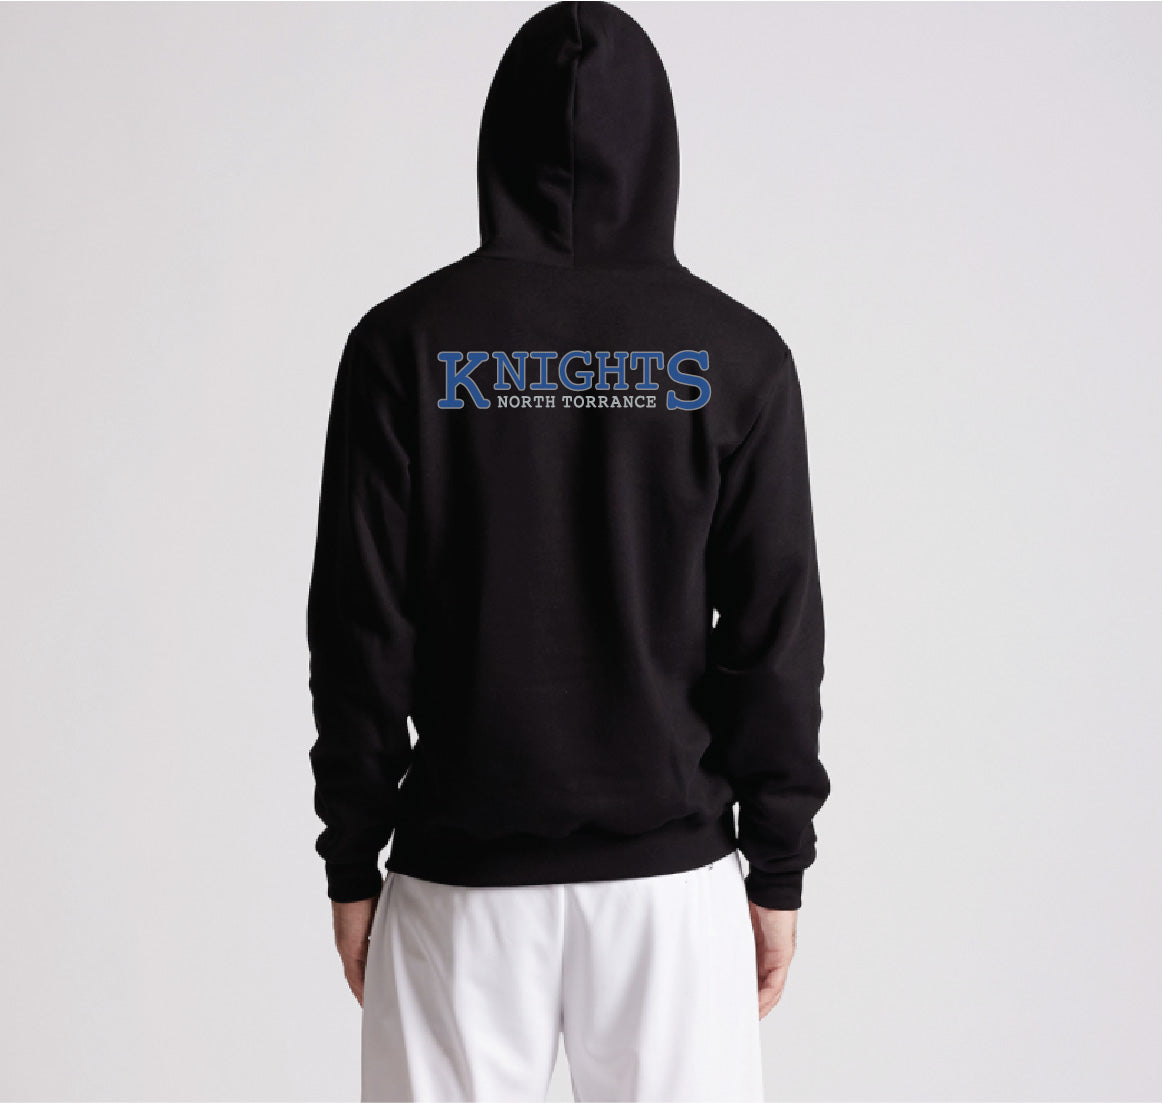 Knights Pull Over Hoodie North Torrance